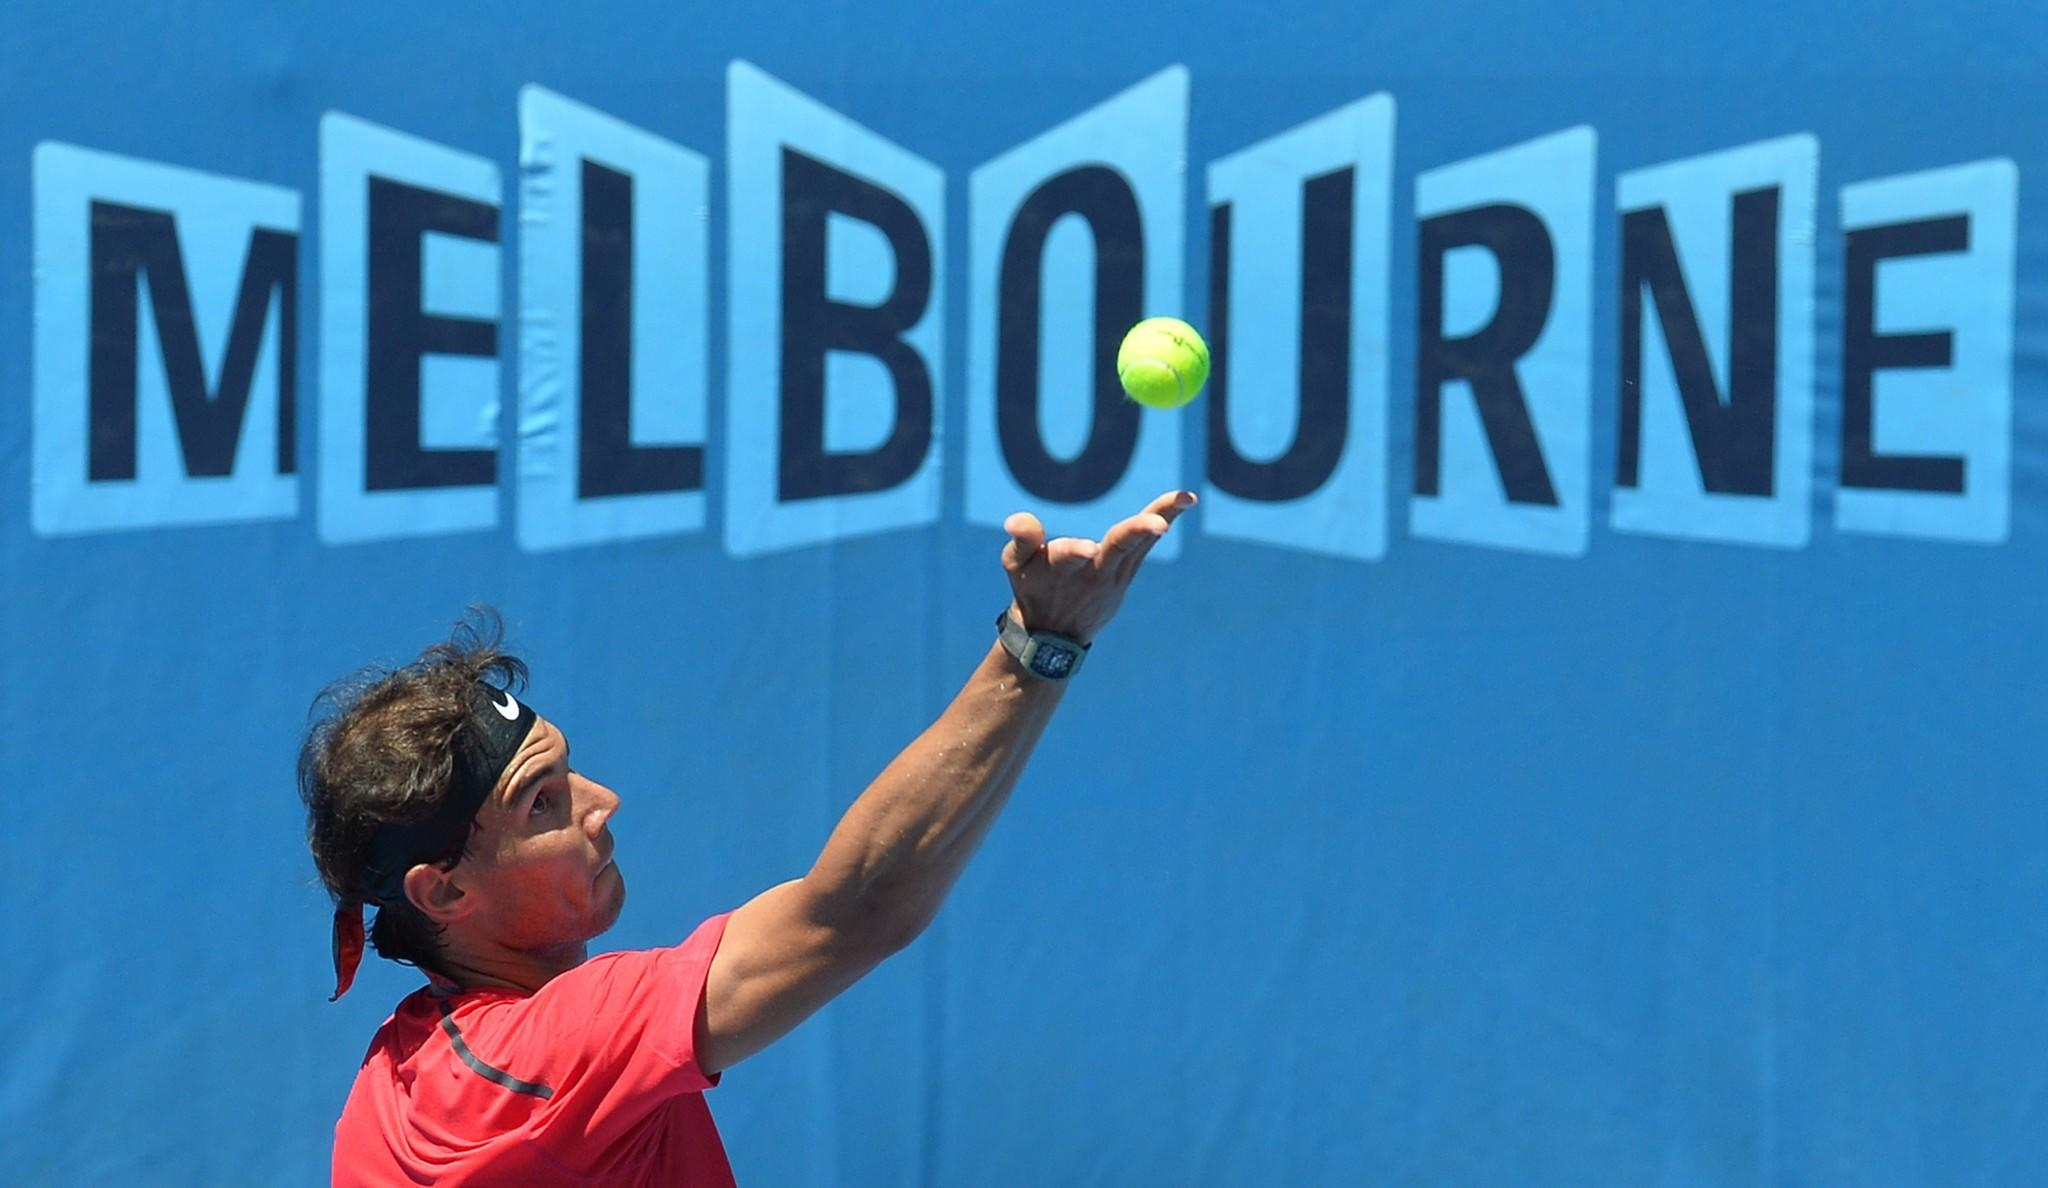 Rafael Nadal serves during a practice session for the upcoming Australian Open.